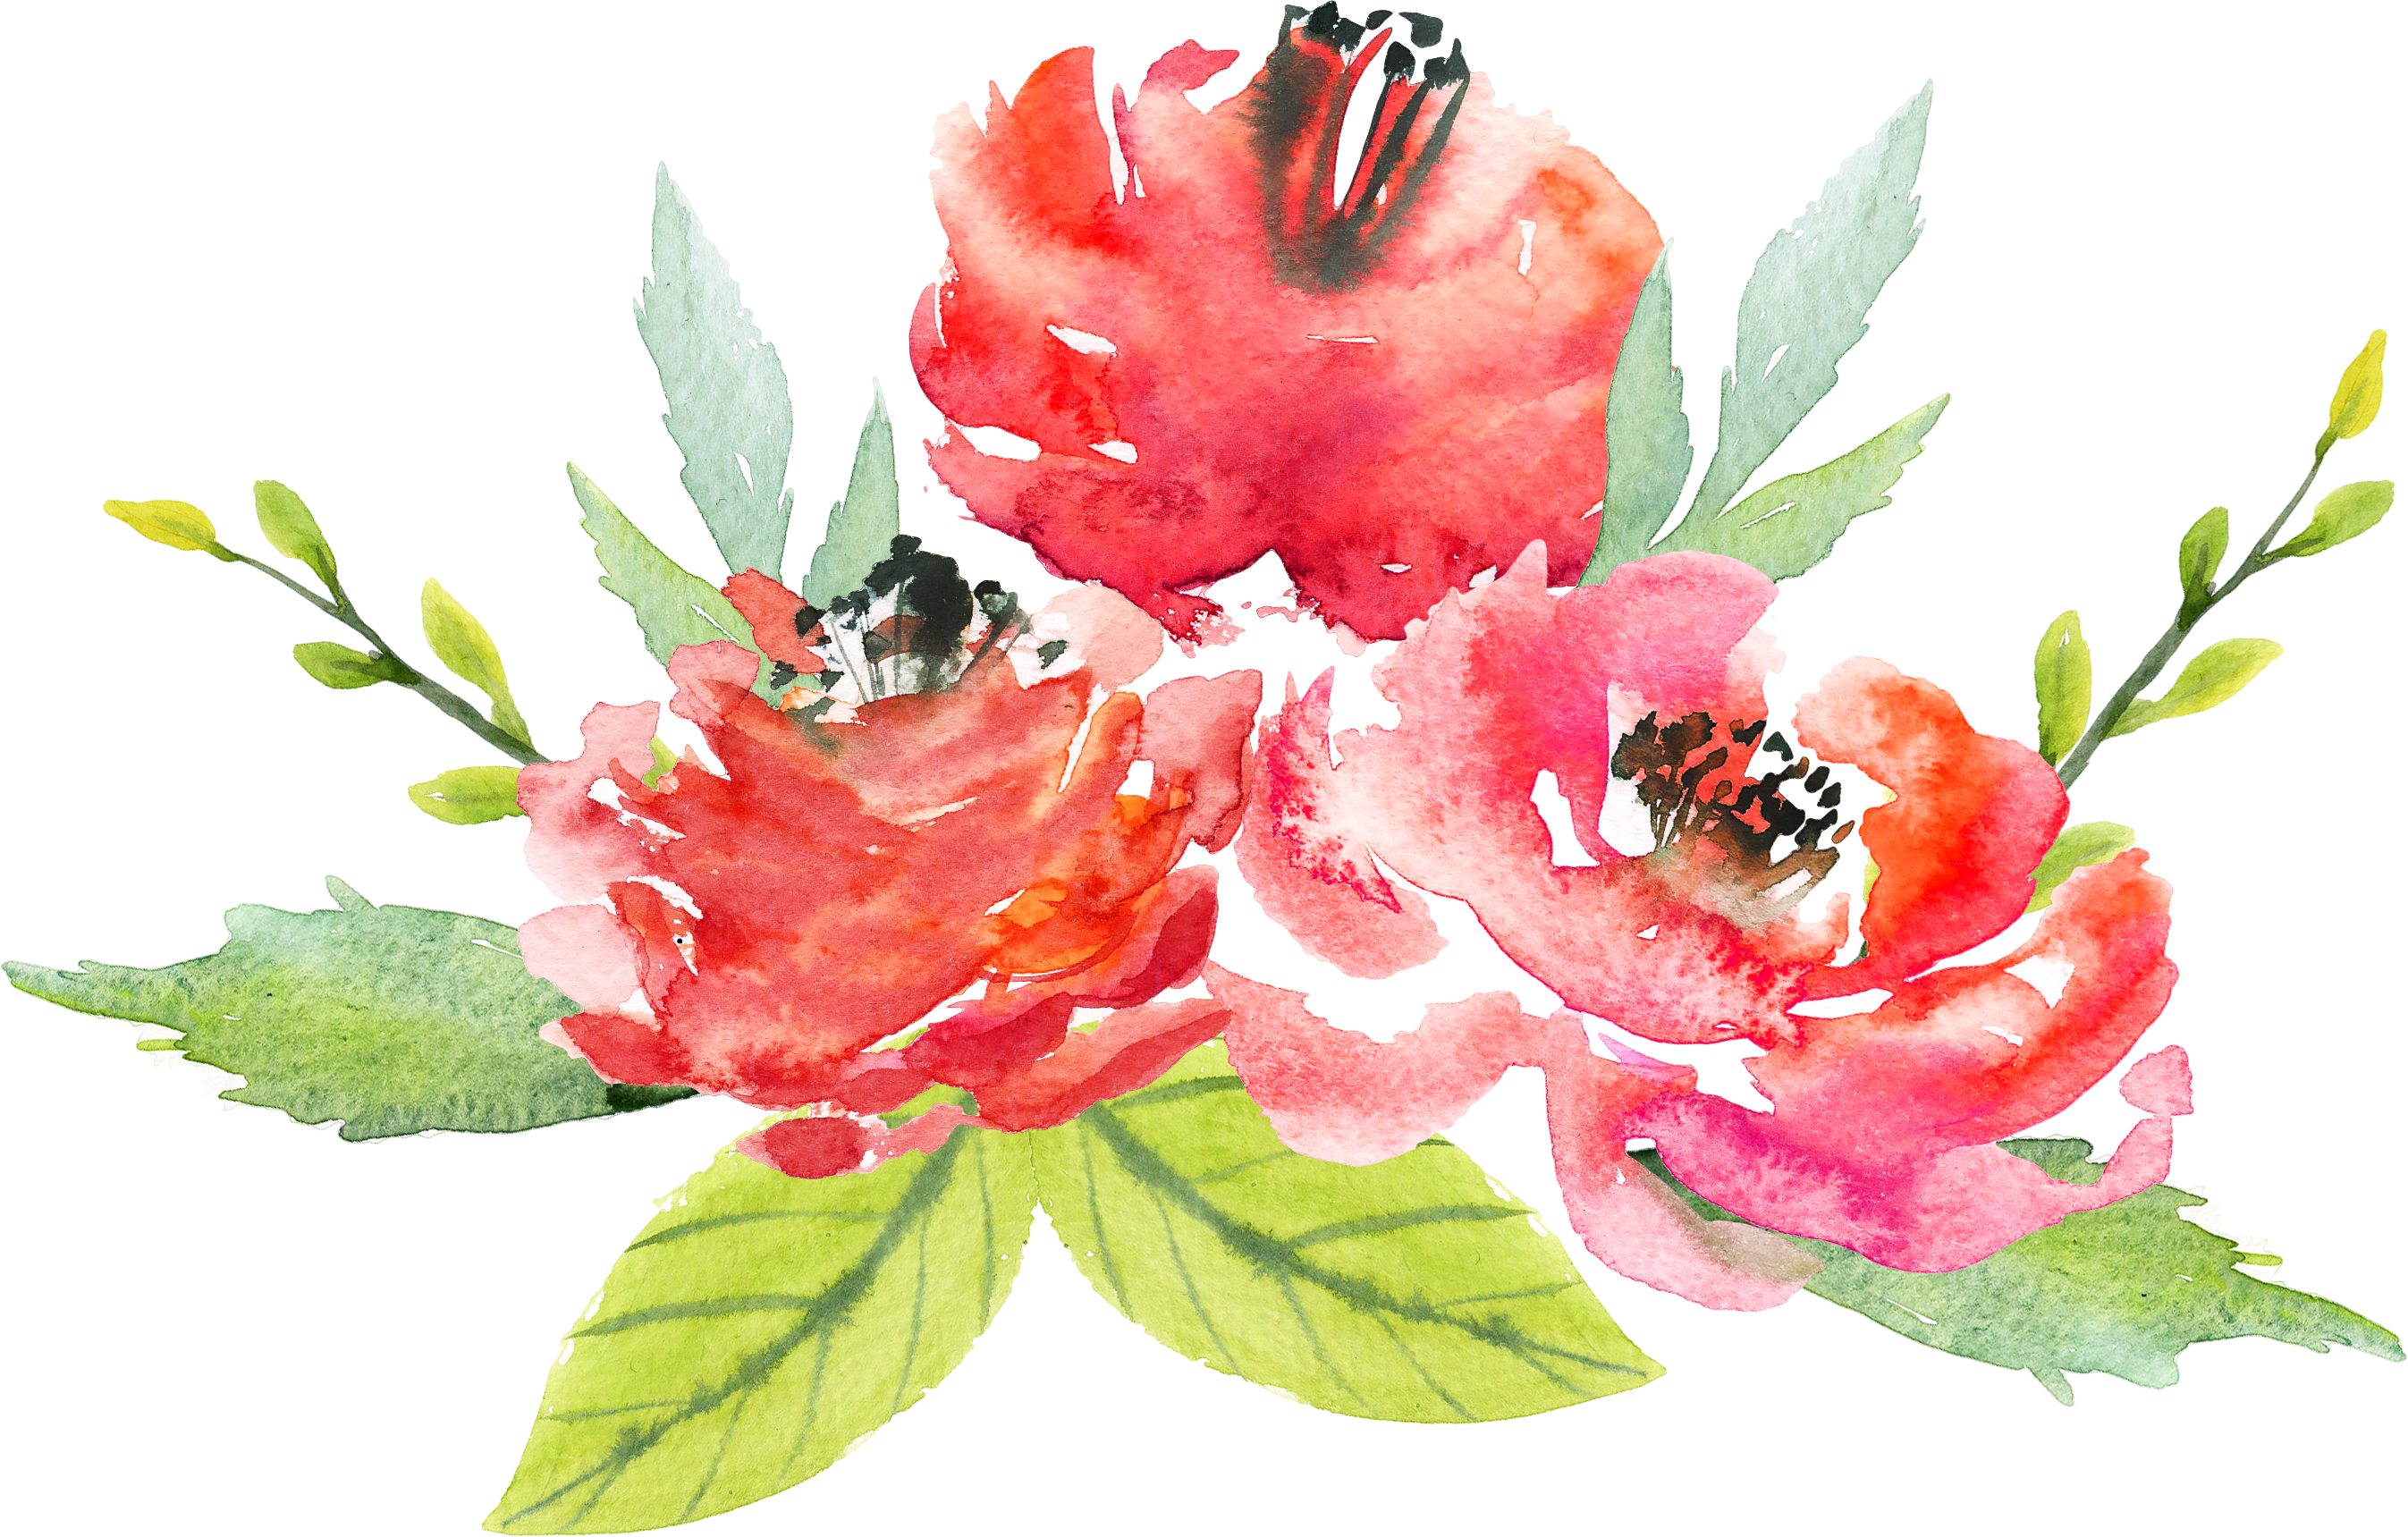 Download Watercolor Floral Bouquet Png Watercolor Red Flowers